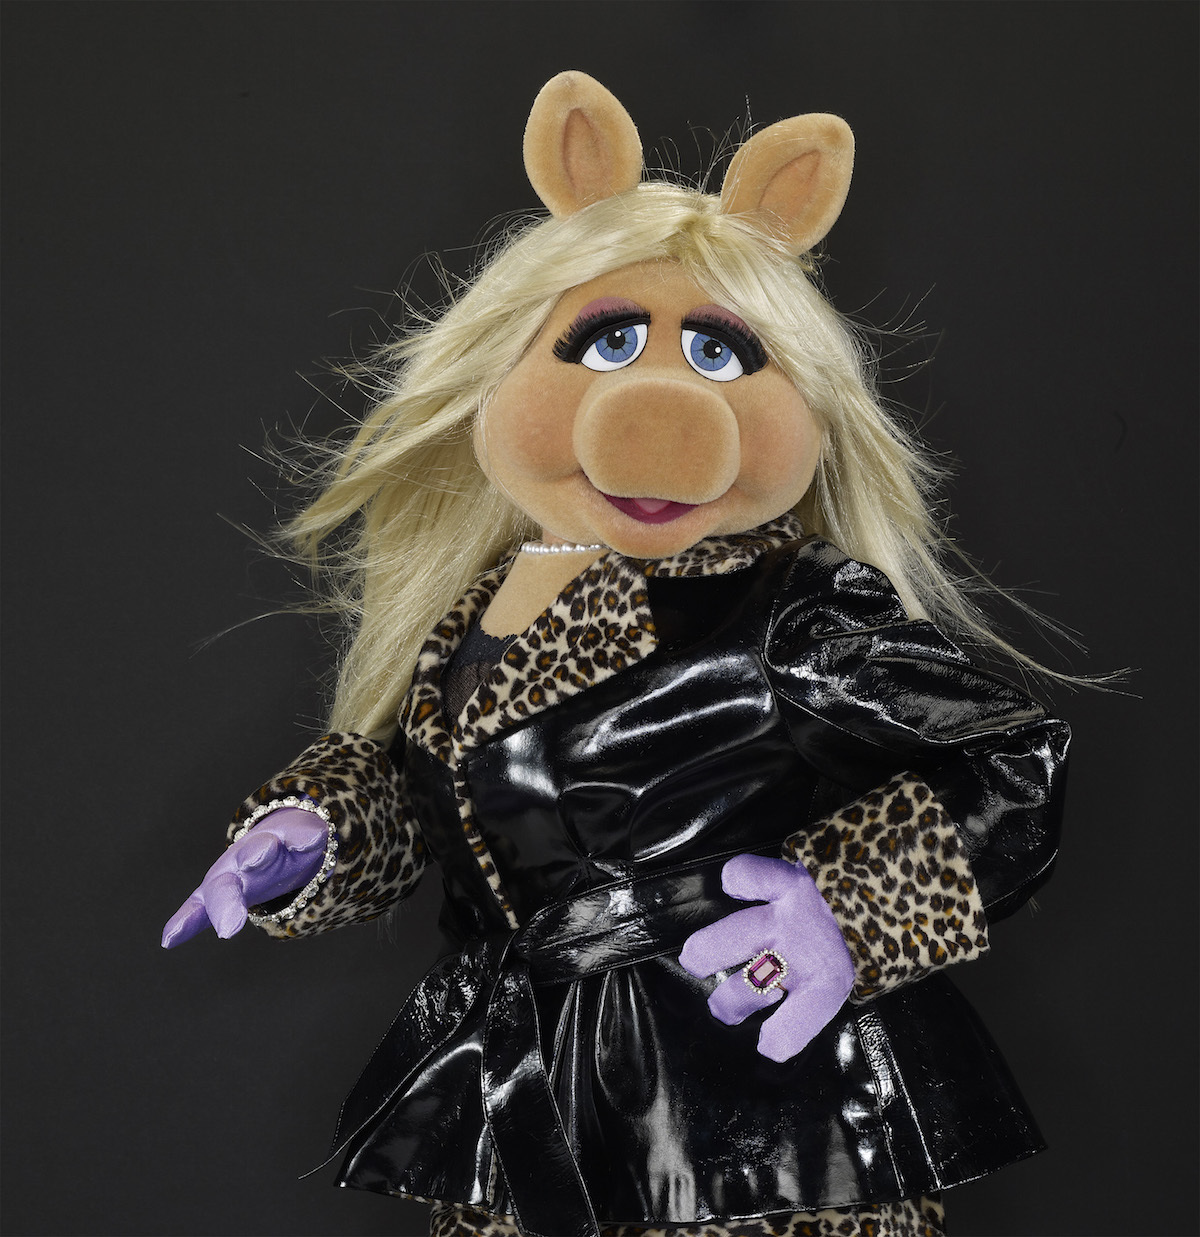 888. Miss Piggy - She can get this neck til the end of time.